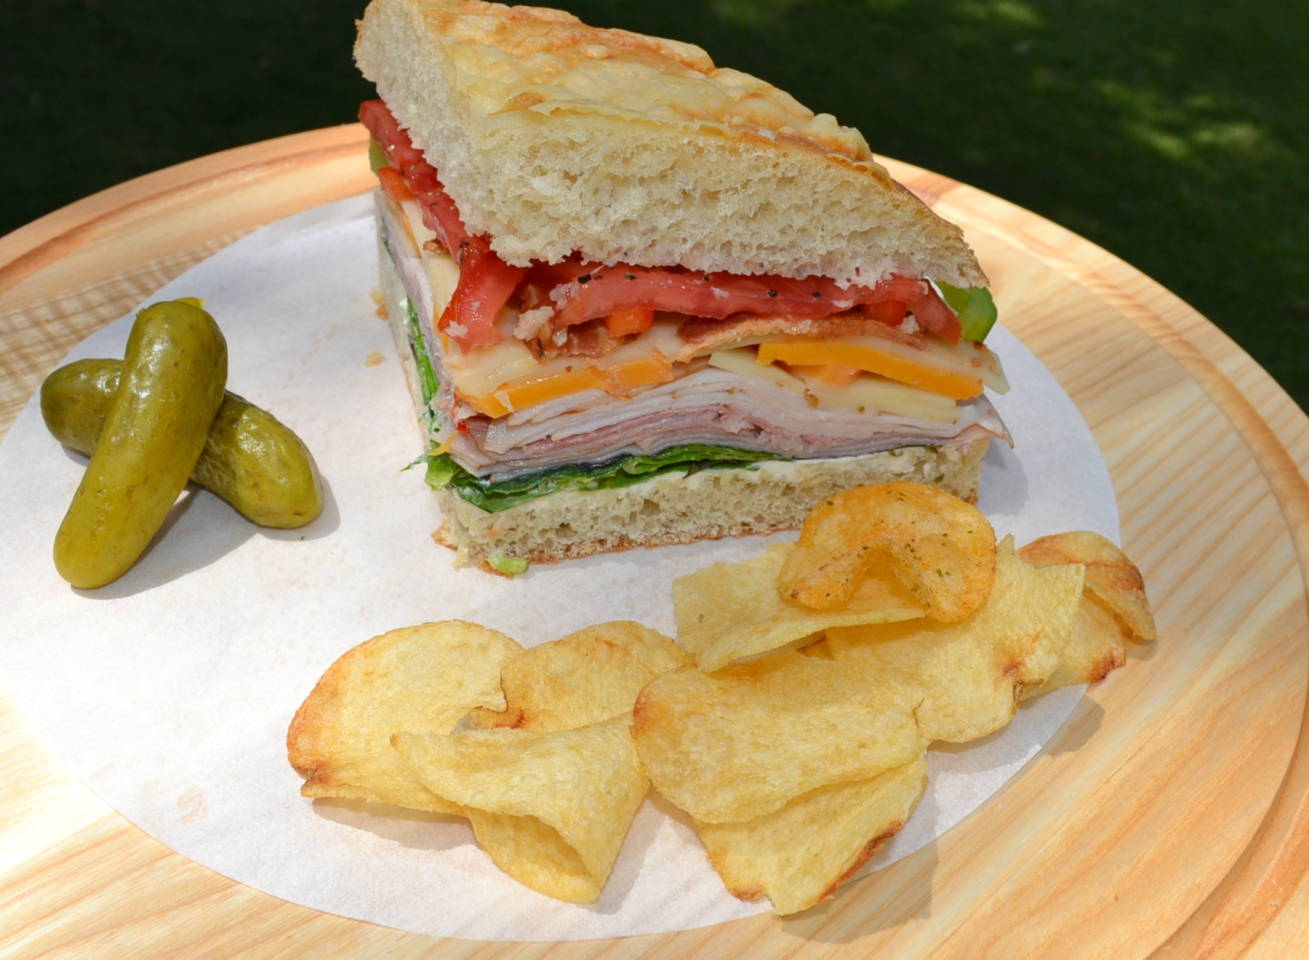 Picnic Foccacia Sandwich is loaded with meats, cheeses,and veggies. Made on a foccia loaf, drizzled with italian dressing and cut into beautiful wedges